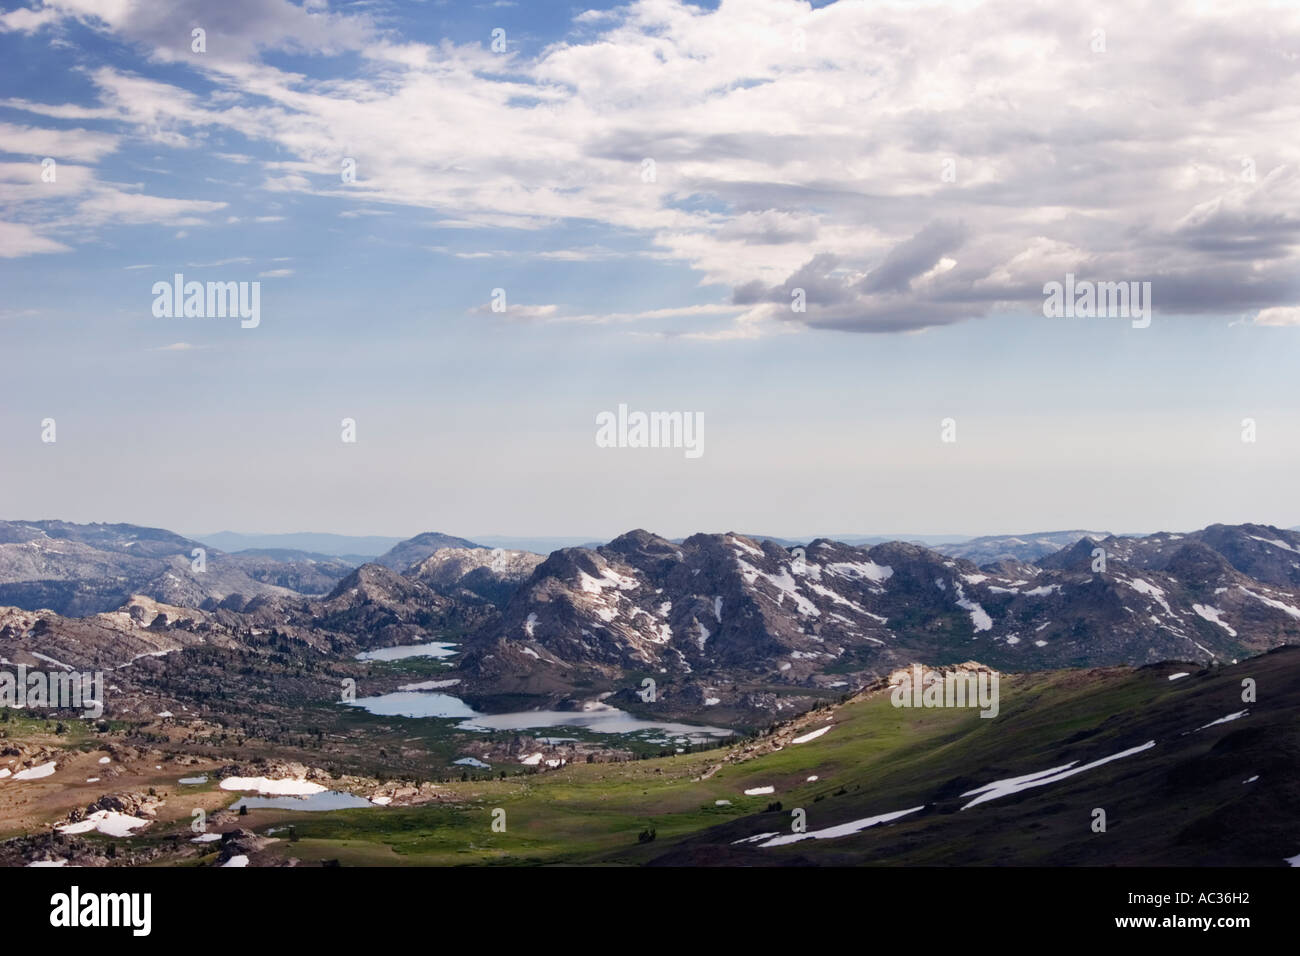 View of the Emigrant Lakes in the Emigrant Wilderness Area in the Sierra Nevada Mountains, California, USA. Stock Photo